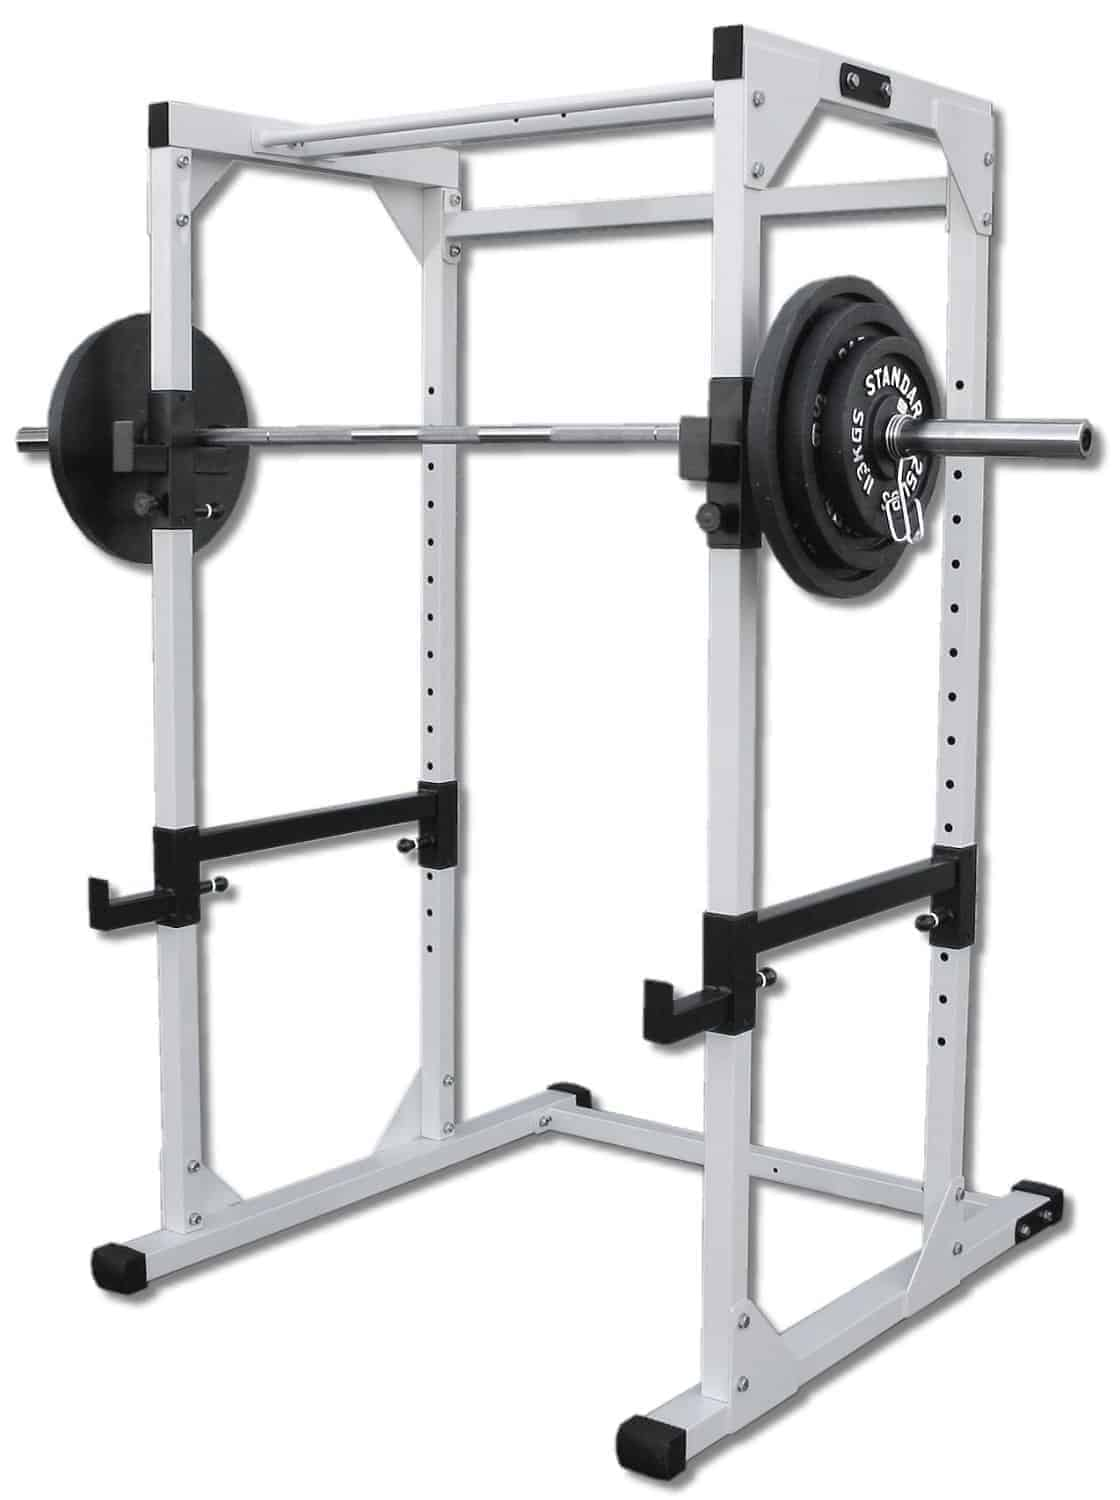 Best 6 power rack reviews guide to get perfect cage for home for A squat rack